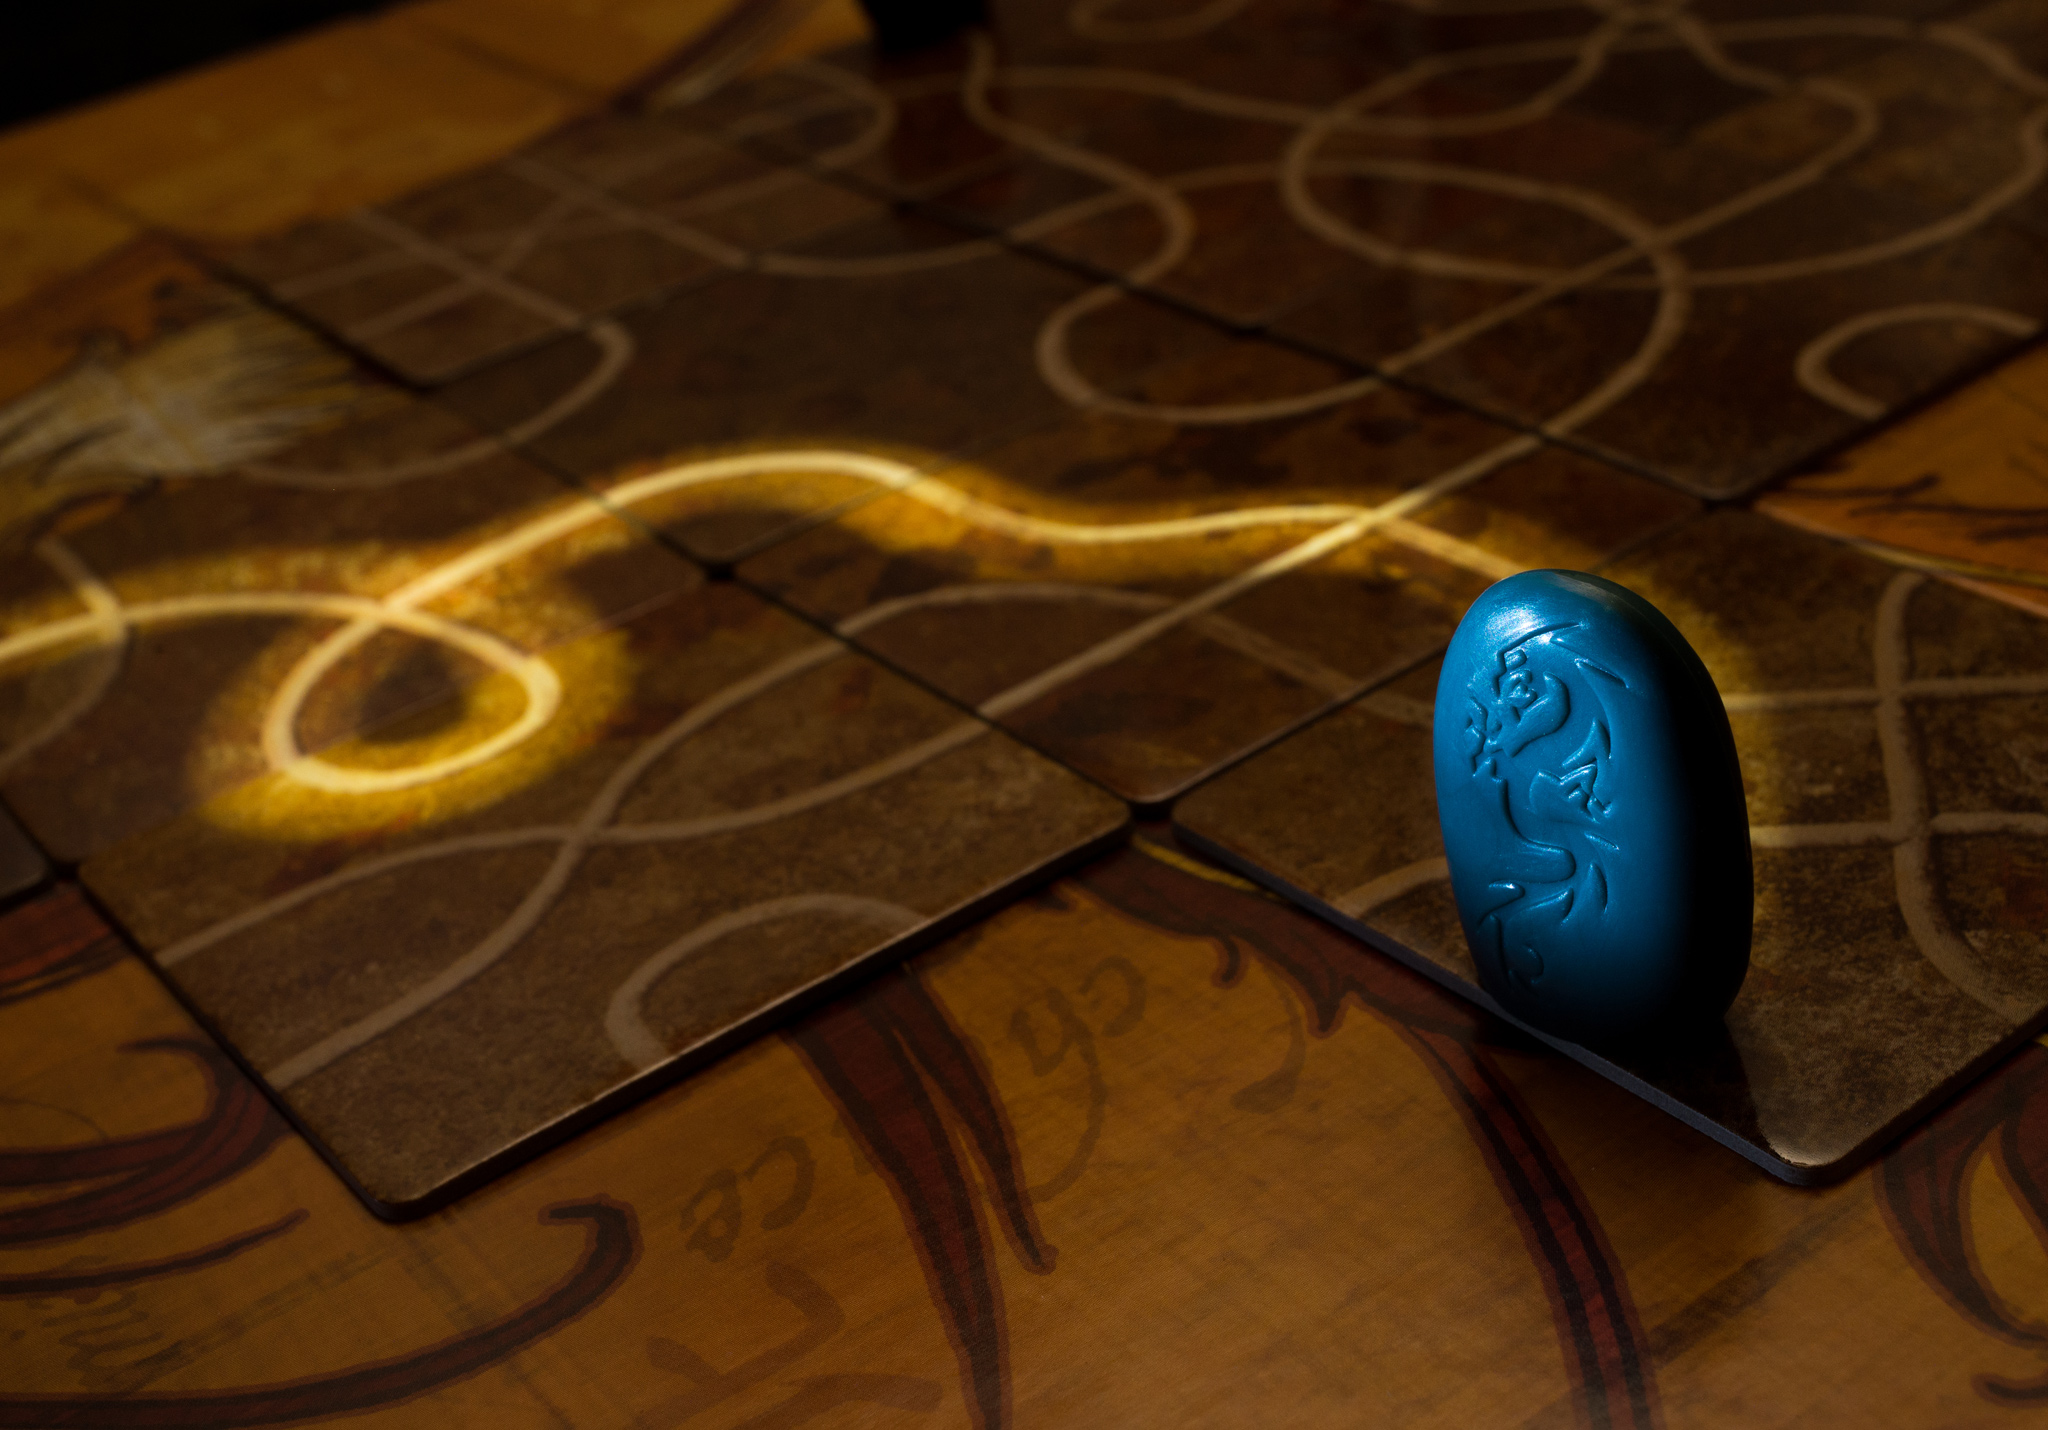 Tsuro tile laying game of the path